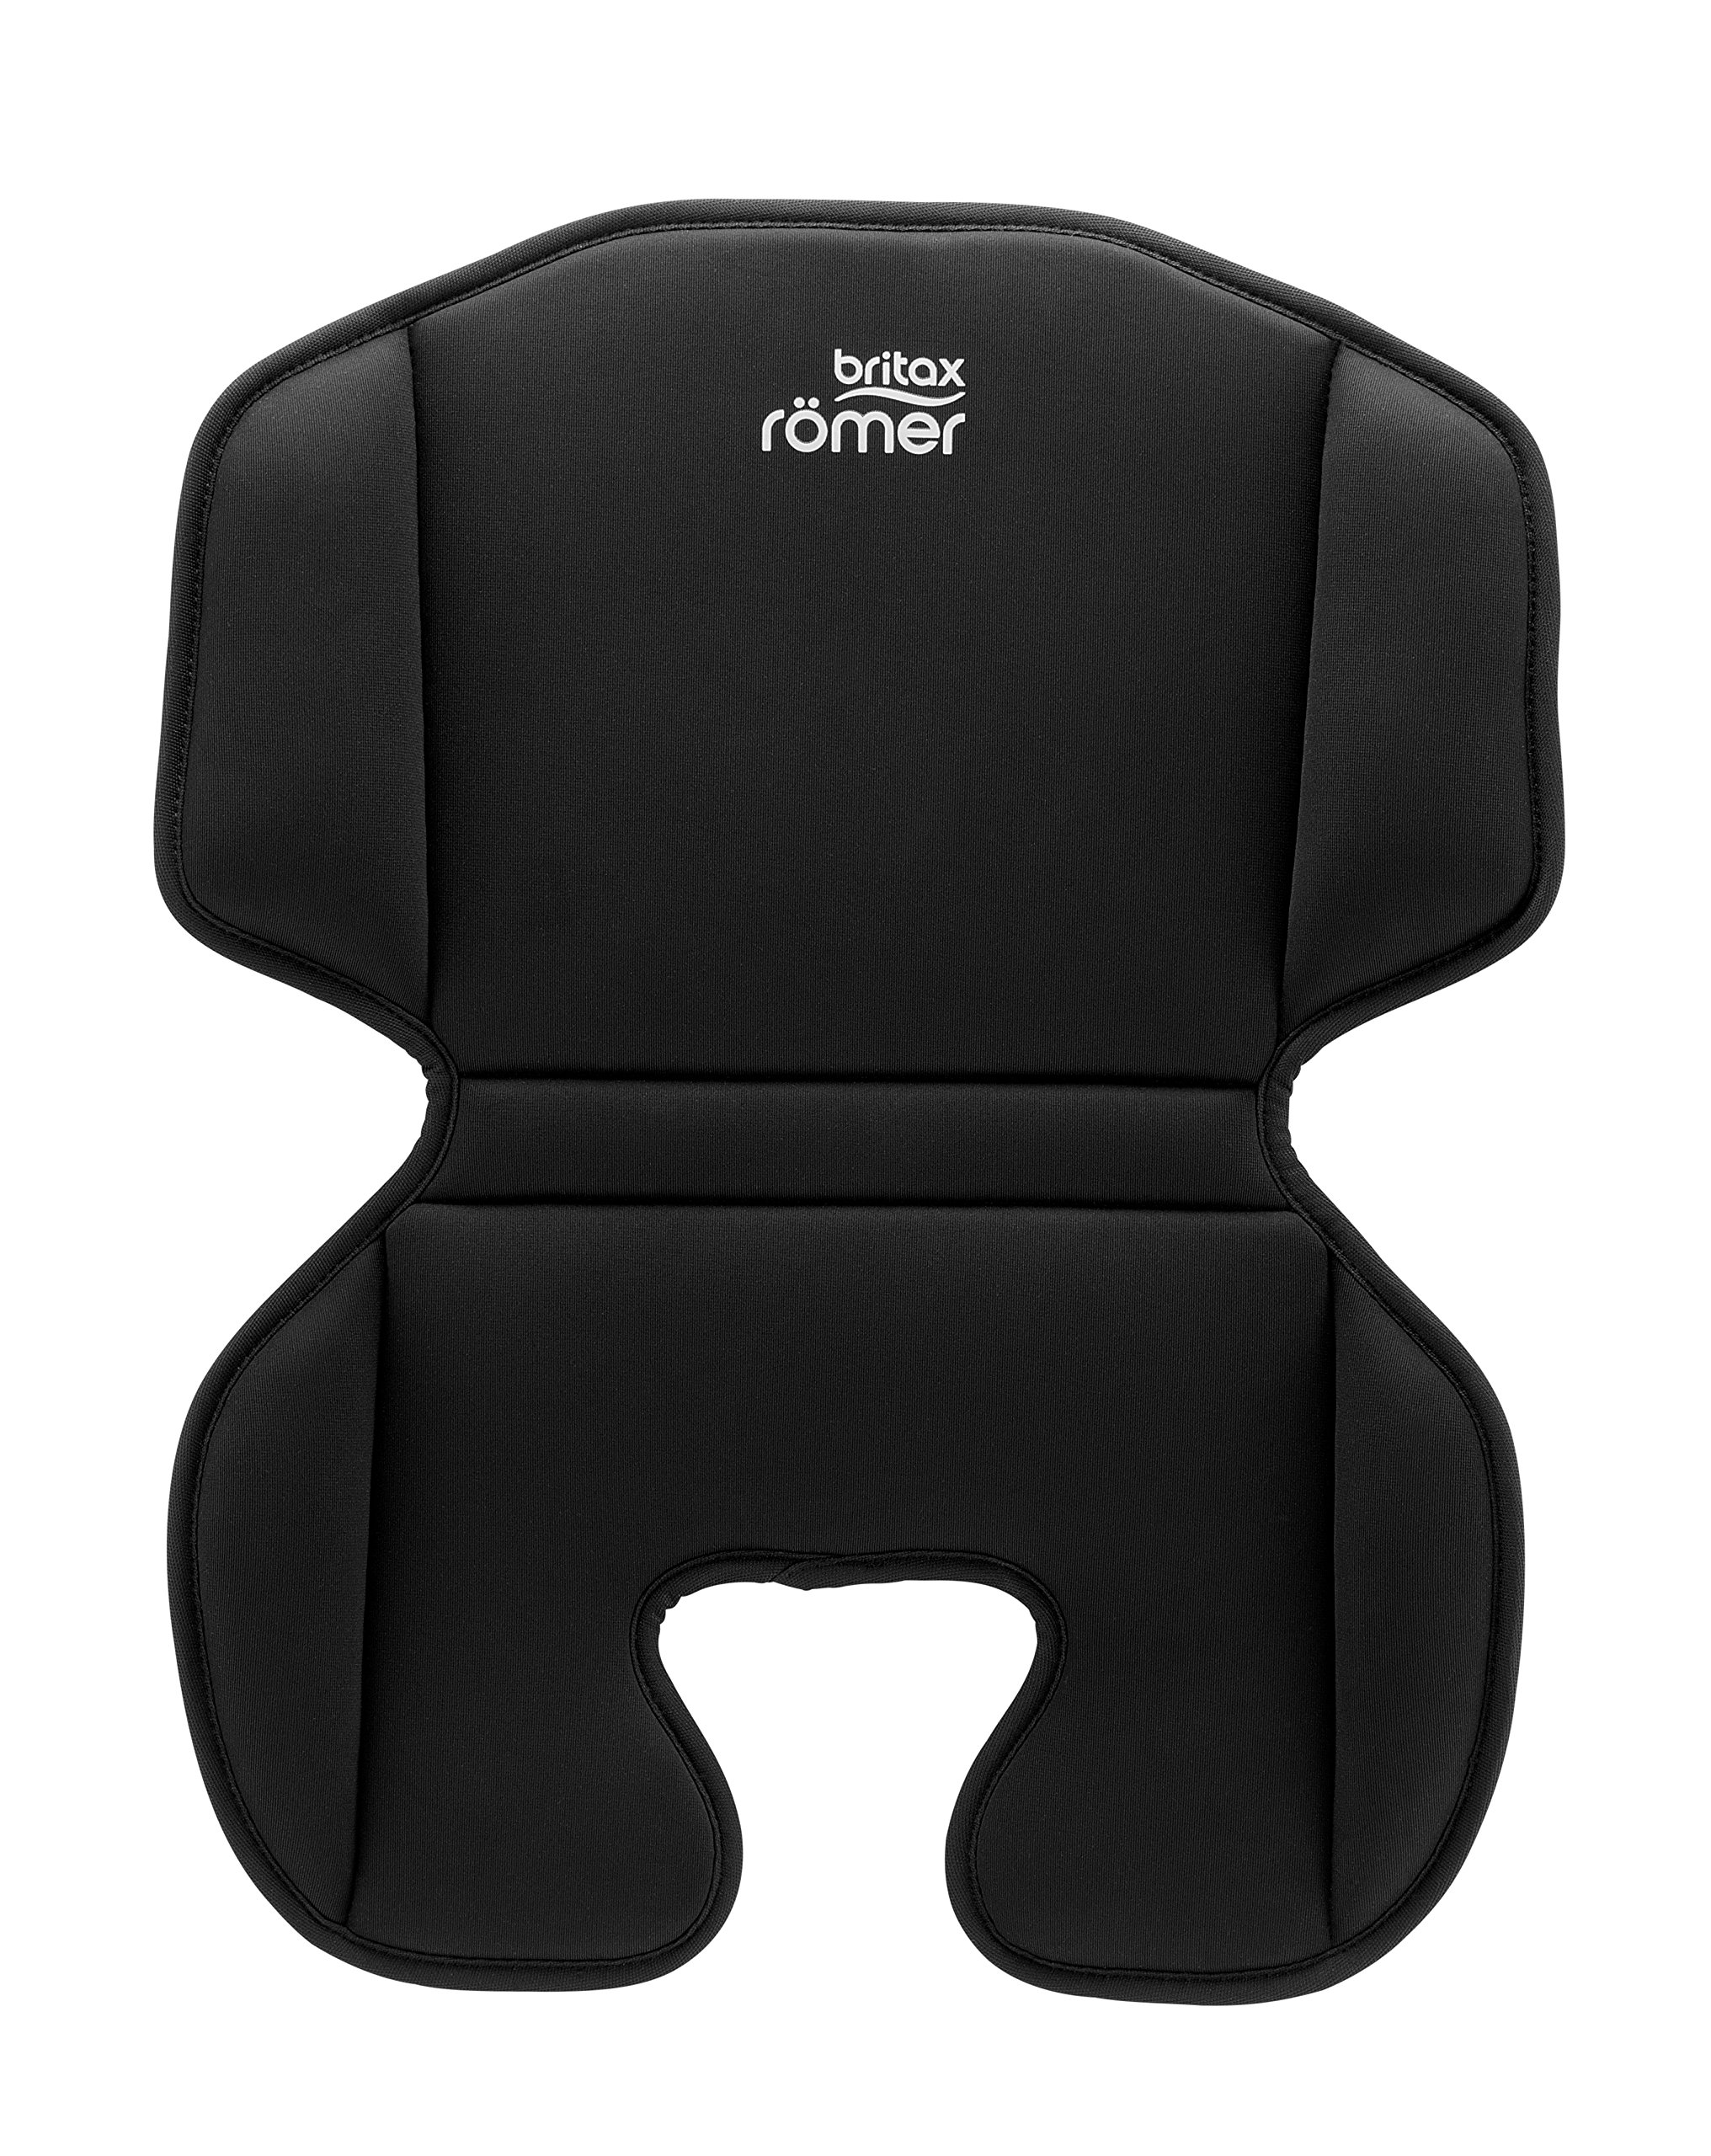 Britax Römer Comfort Insert Car Seat Britax Römer Provides a comfortable environment for your child Can be used for ece r44 car seats with an integral harness from 9 kg Can be used for ece r129 (i-size) approved car seats with an integral harness from 60 cm rearward facing or 76 cm forward facing 1